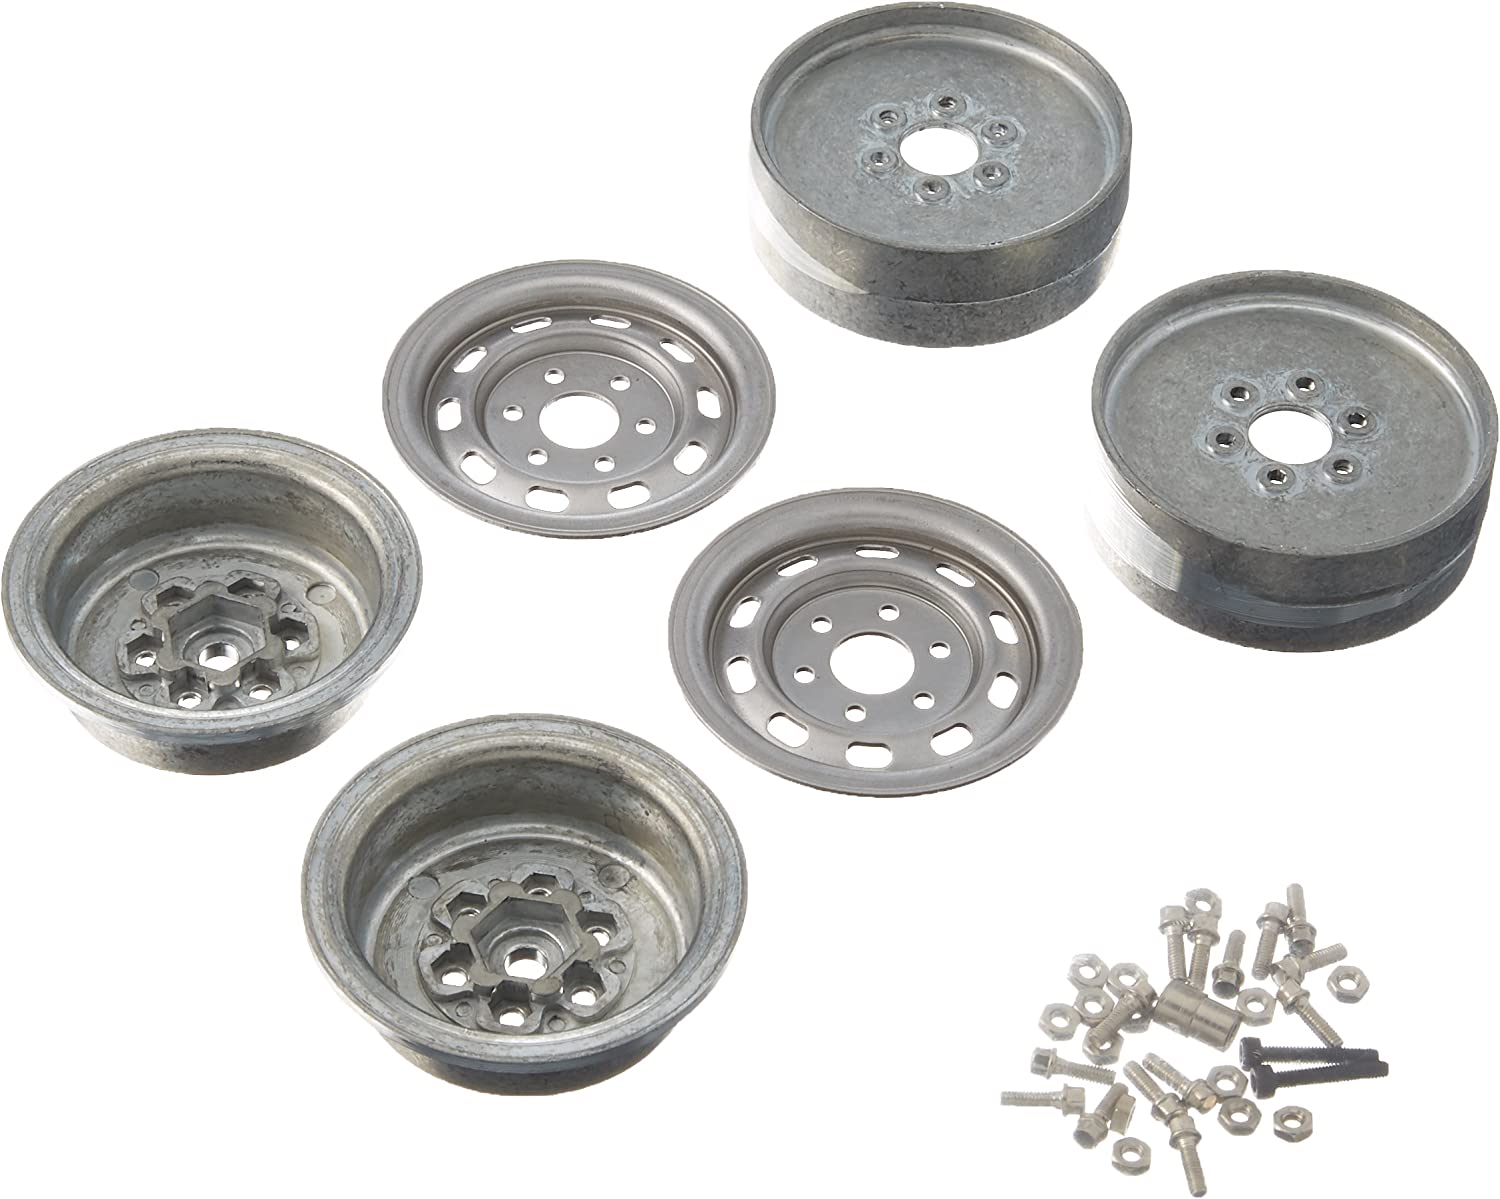 """Gmade GM70225 1.9/"""" NR01 Beadlock Wheels Chrome 2 for 1.9 Size Tires w//12mm Hex"""